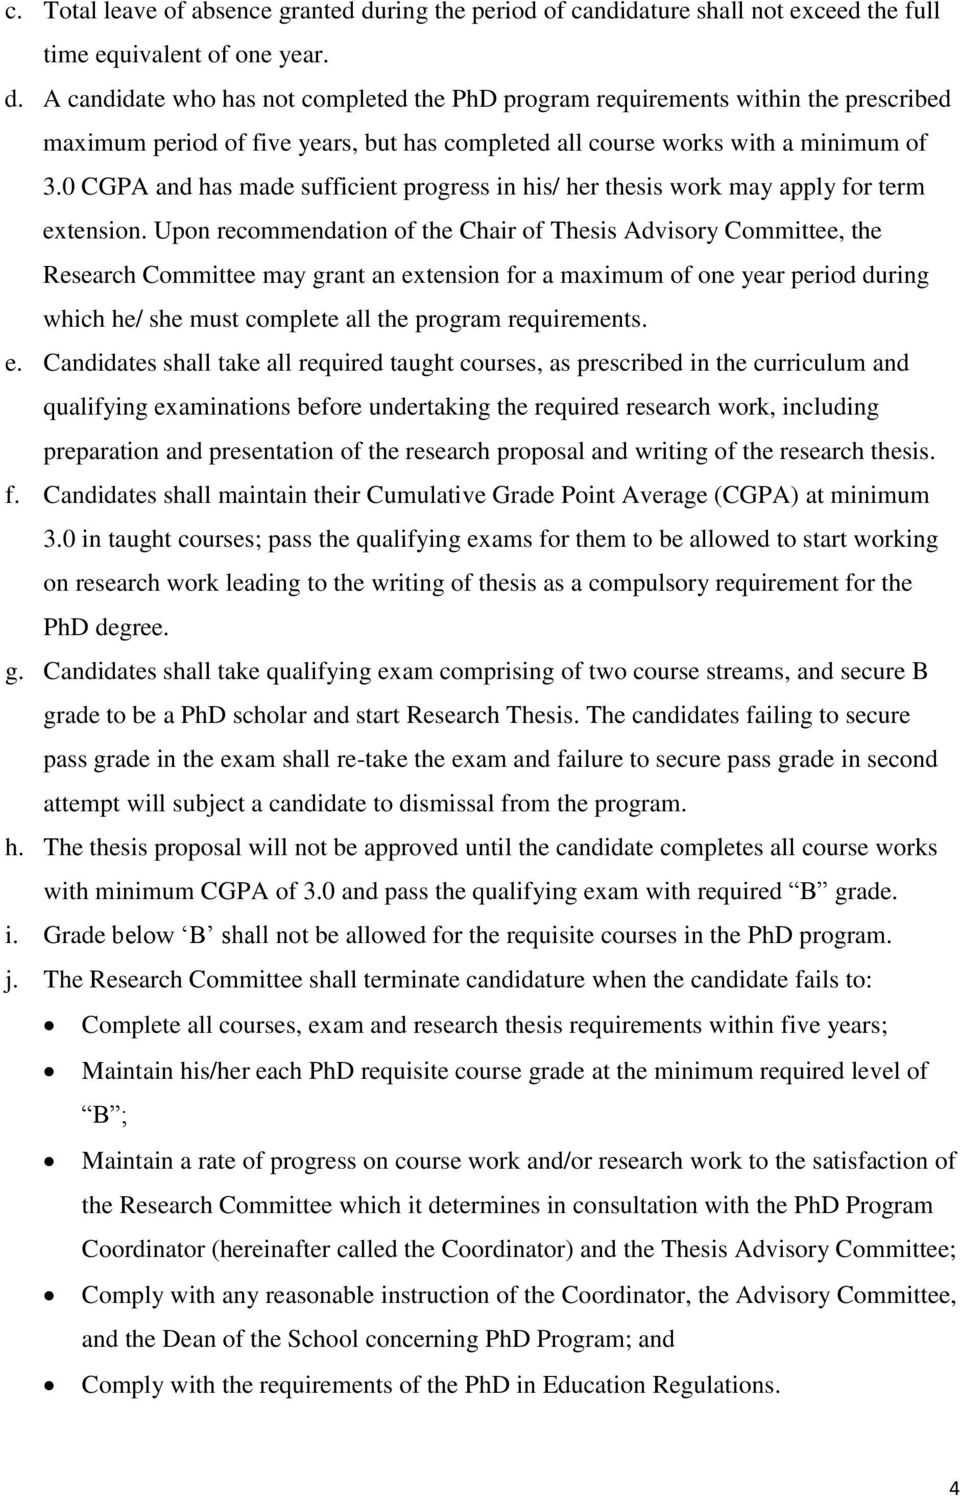 A candidate who has not completed the PhD program requirements within the prescribed maximum period of five years, but has completed all course works with a minimum of 3.